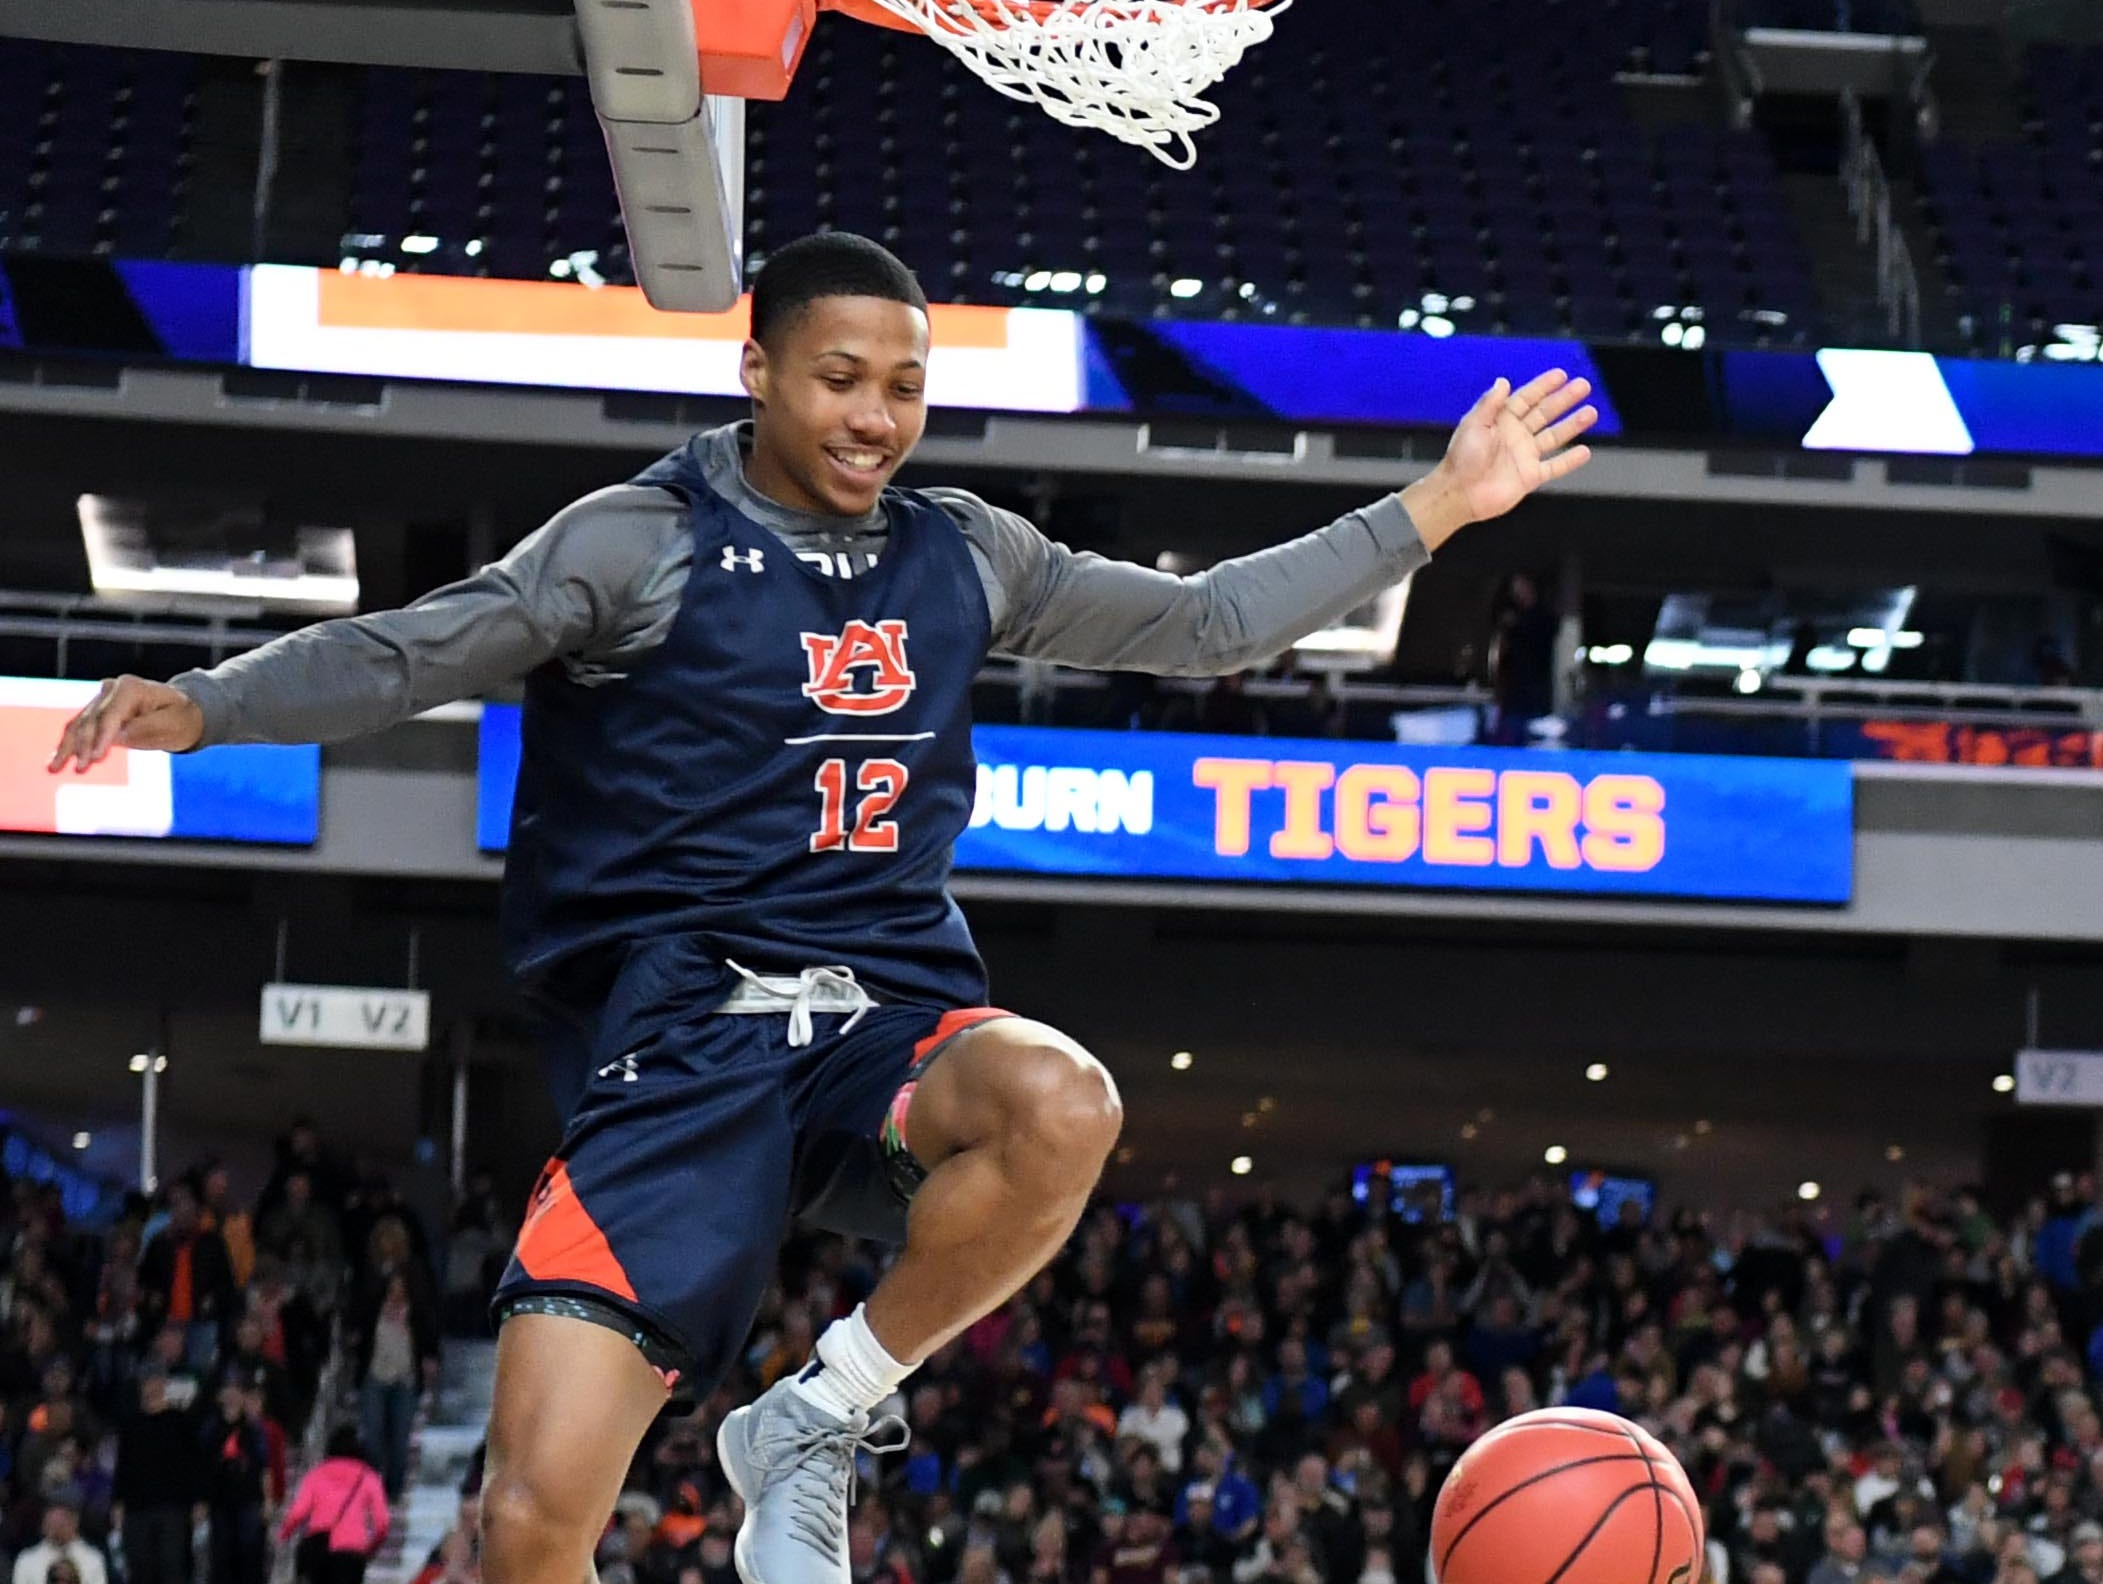 Apr 5, 2019; Minneapolis, MN, USA; Auburn Tigers guard J'Von McCormick (12) dunks during practice for the 2019 men's Final Four at US Bank Stadium. Mandatory Credit: Robert Deutsch-USA TODAY Sports